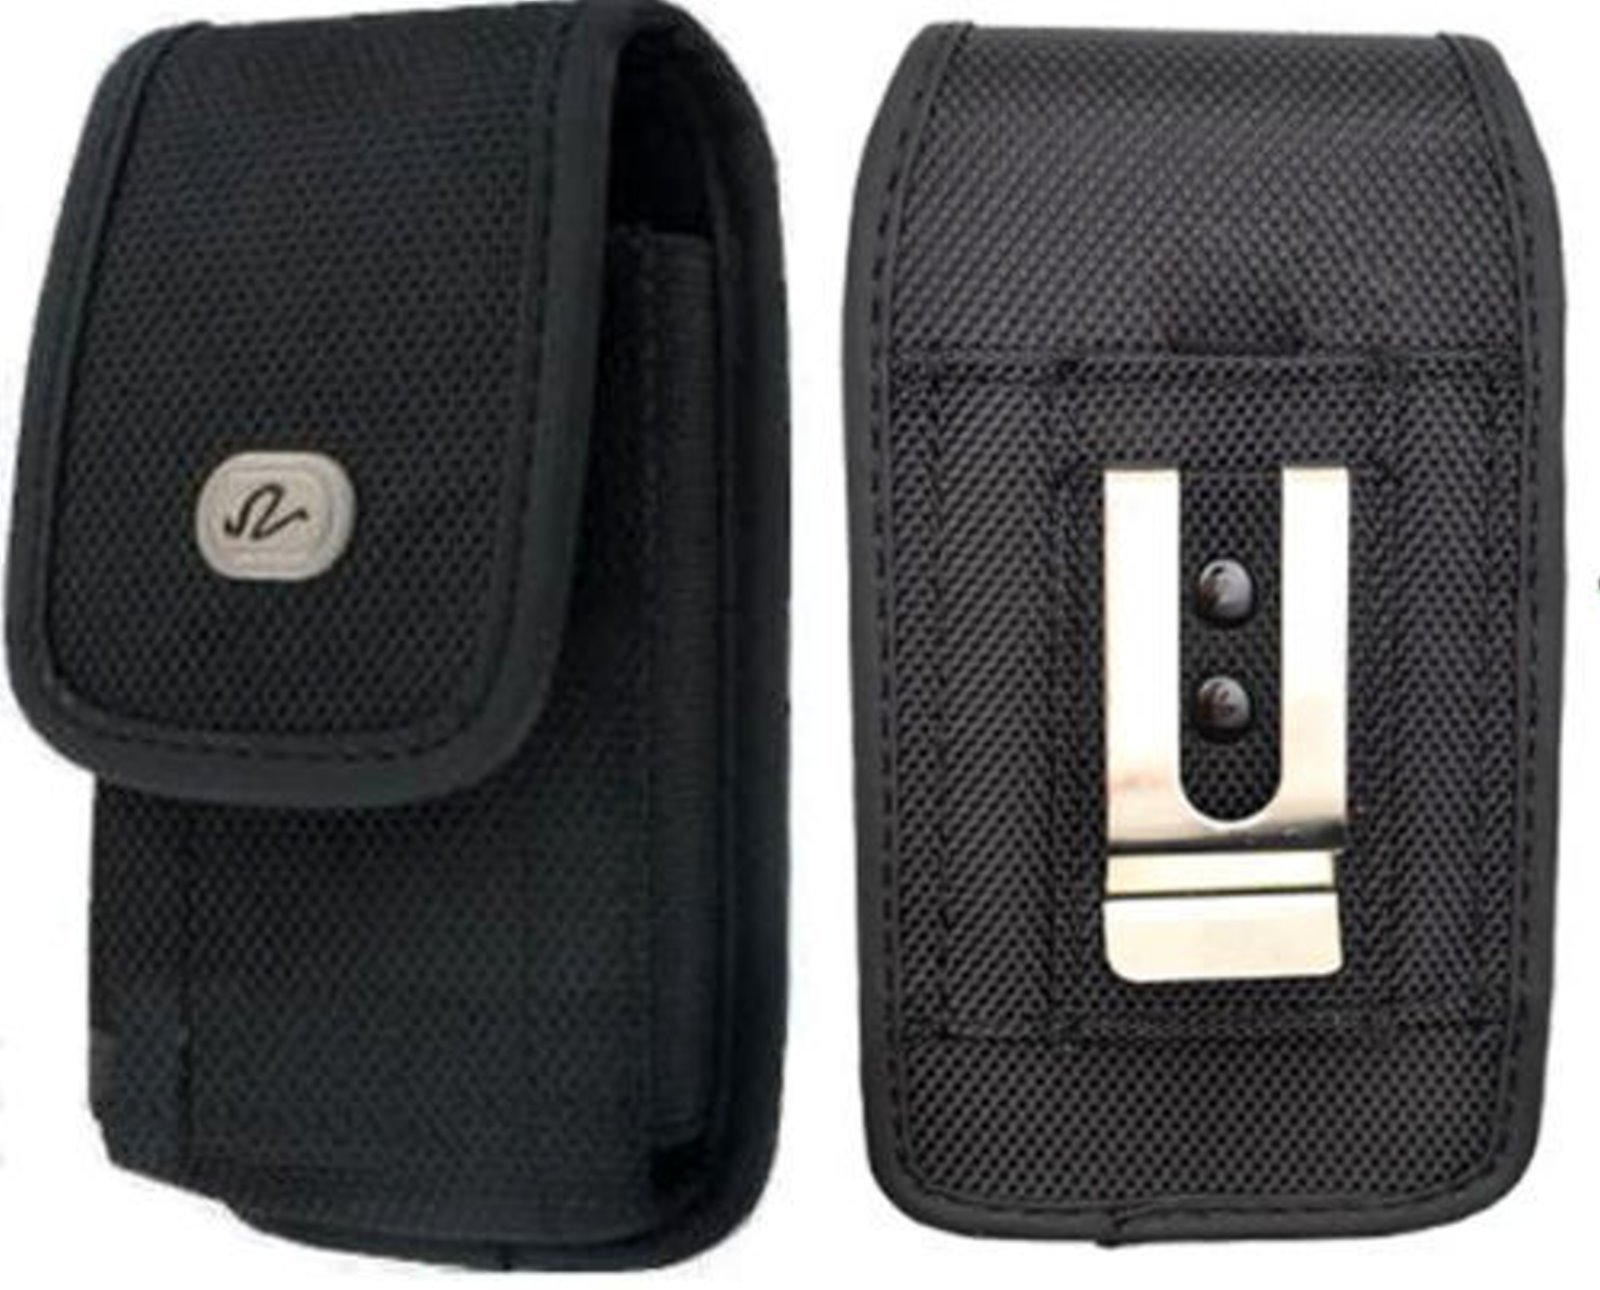 LG Lancet for Android Vertical Heavy Duty Case Holster Pouch Canvas Rugged Velcro Closure Belt Clip + Belt Loop [Fits Phone with Mophie Juice Pack/Otterbox/Extended Battery/Commuter On It]